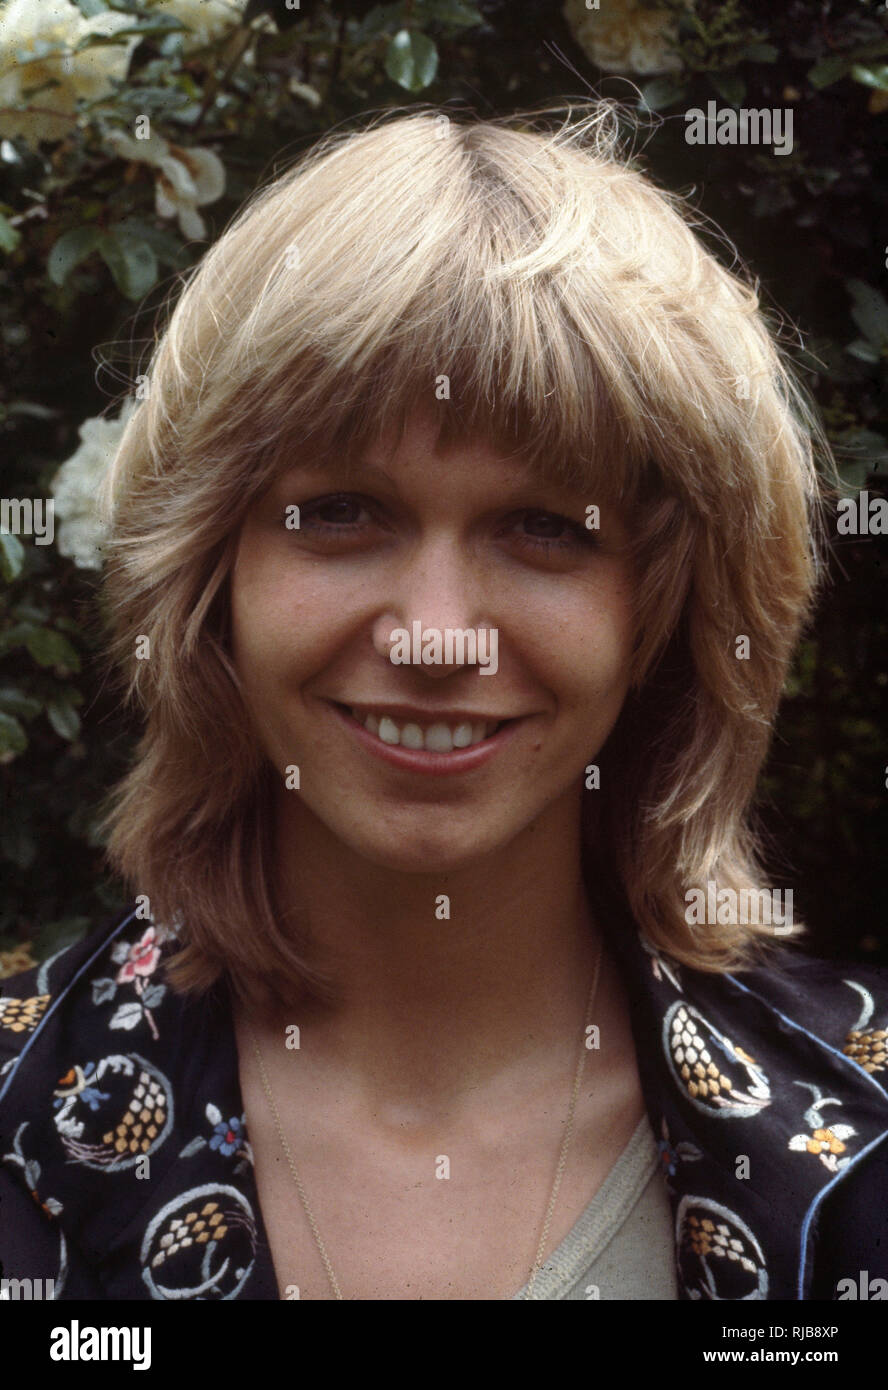 Julie May Peasgood (1956-) - English actress, television presenter, author and voice-over artist. - Stock Image